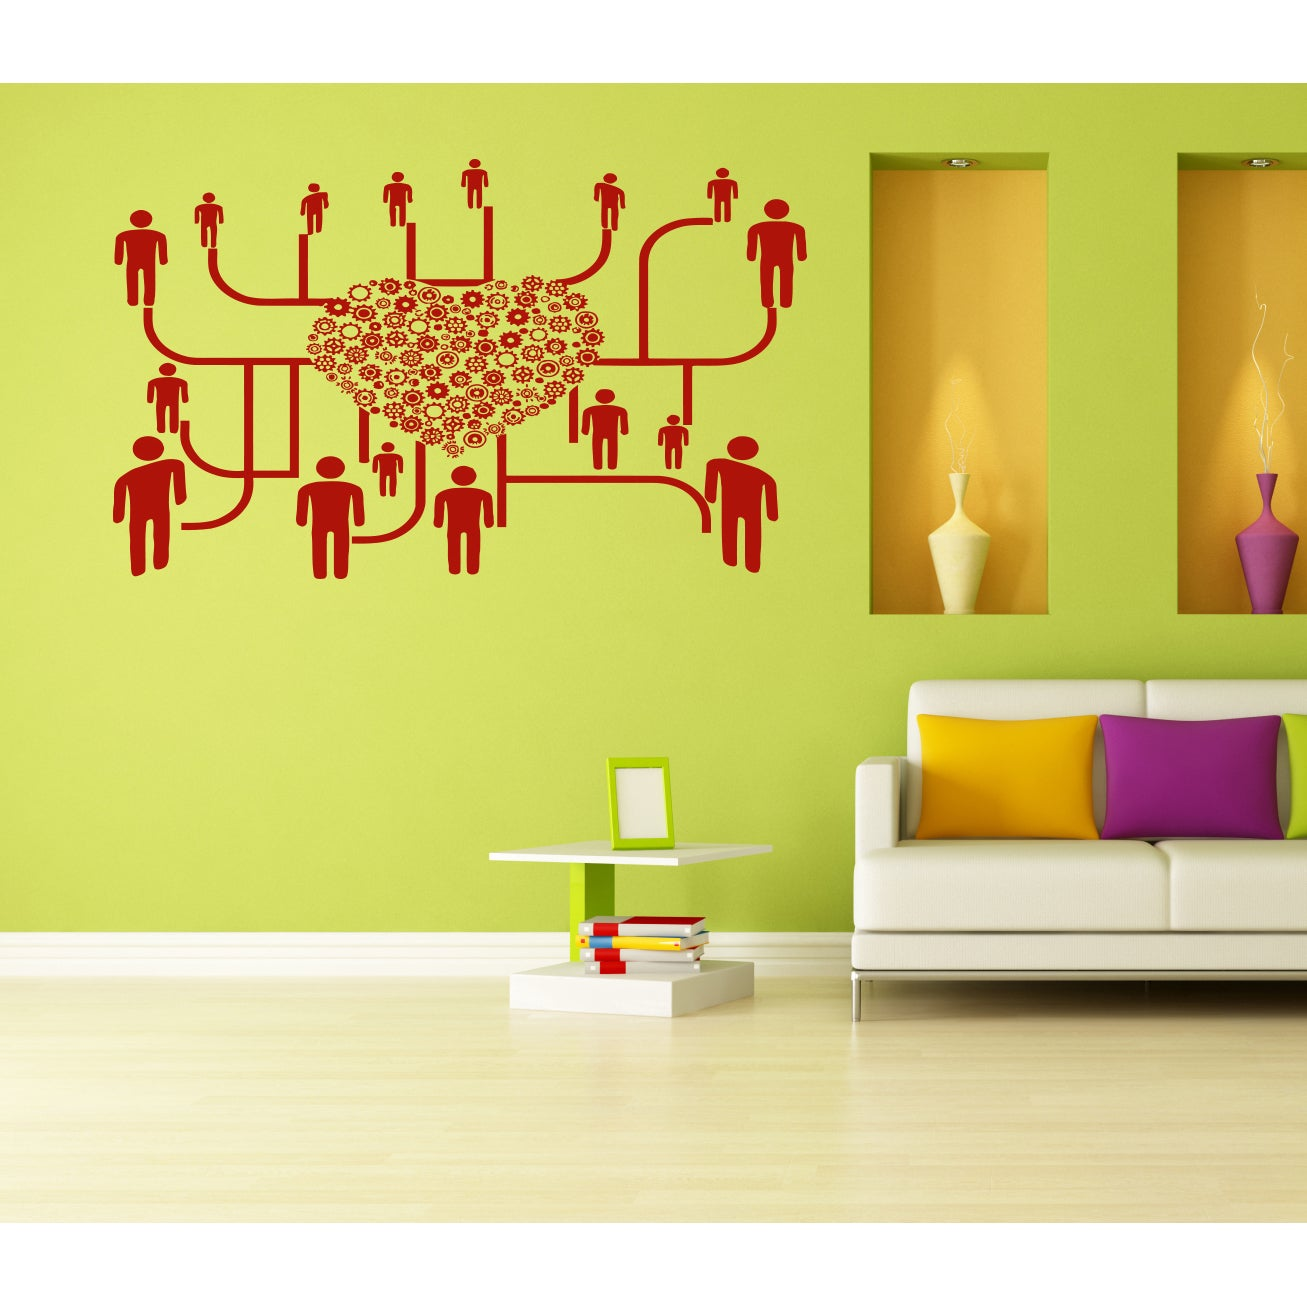 Many people heart mechanism love Wall Art Sticker Decal Red - Free ...